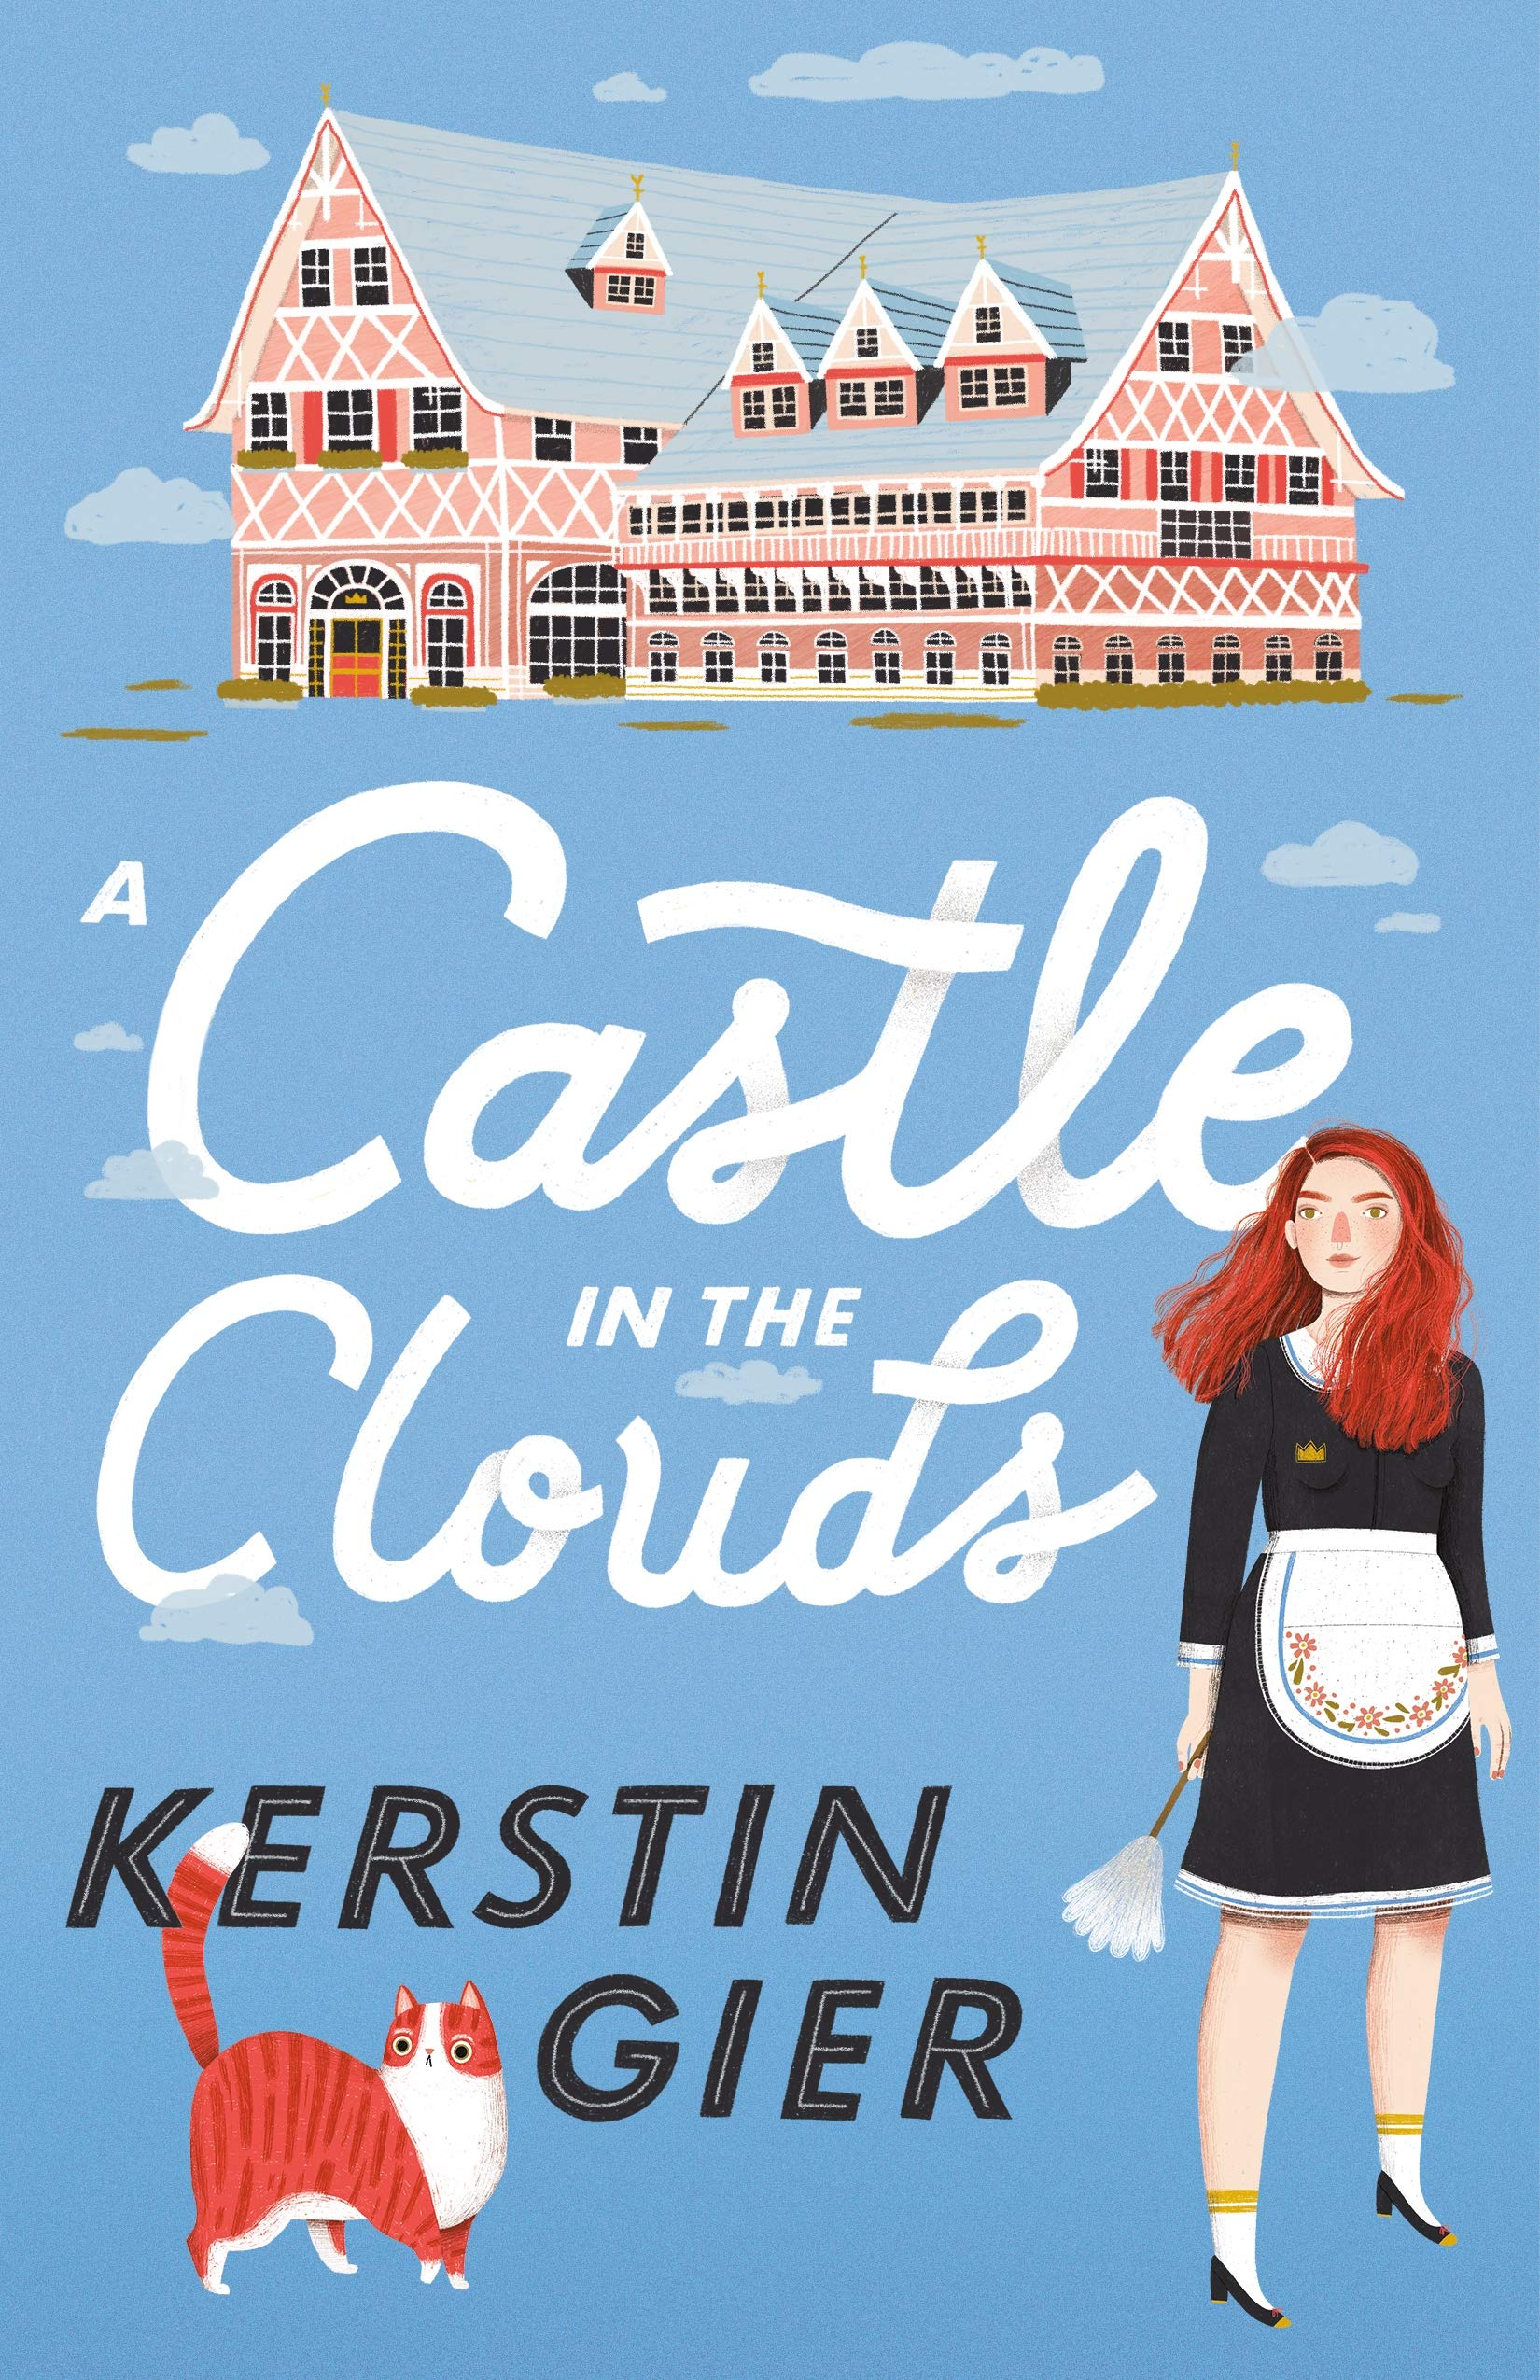 Amazon.com: A Castle in the Clouds (9781250300195): Gier, Kerstin,  Fursland, Romy: Books